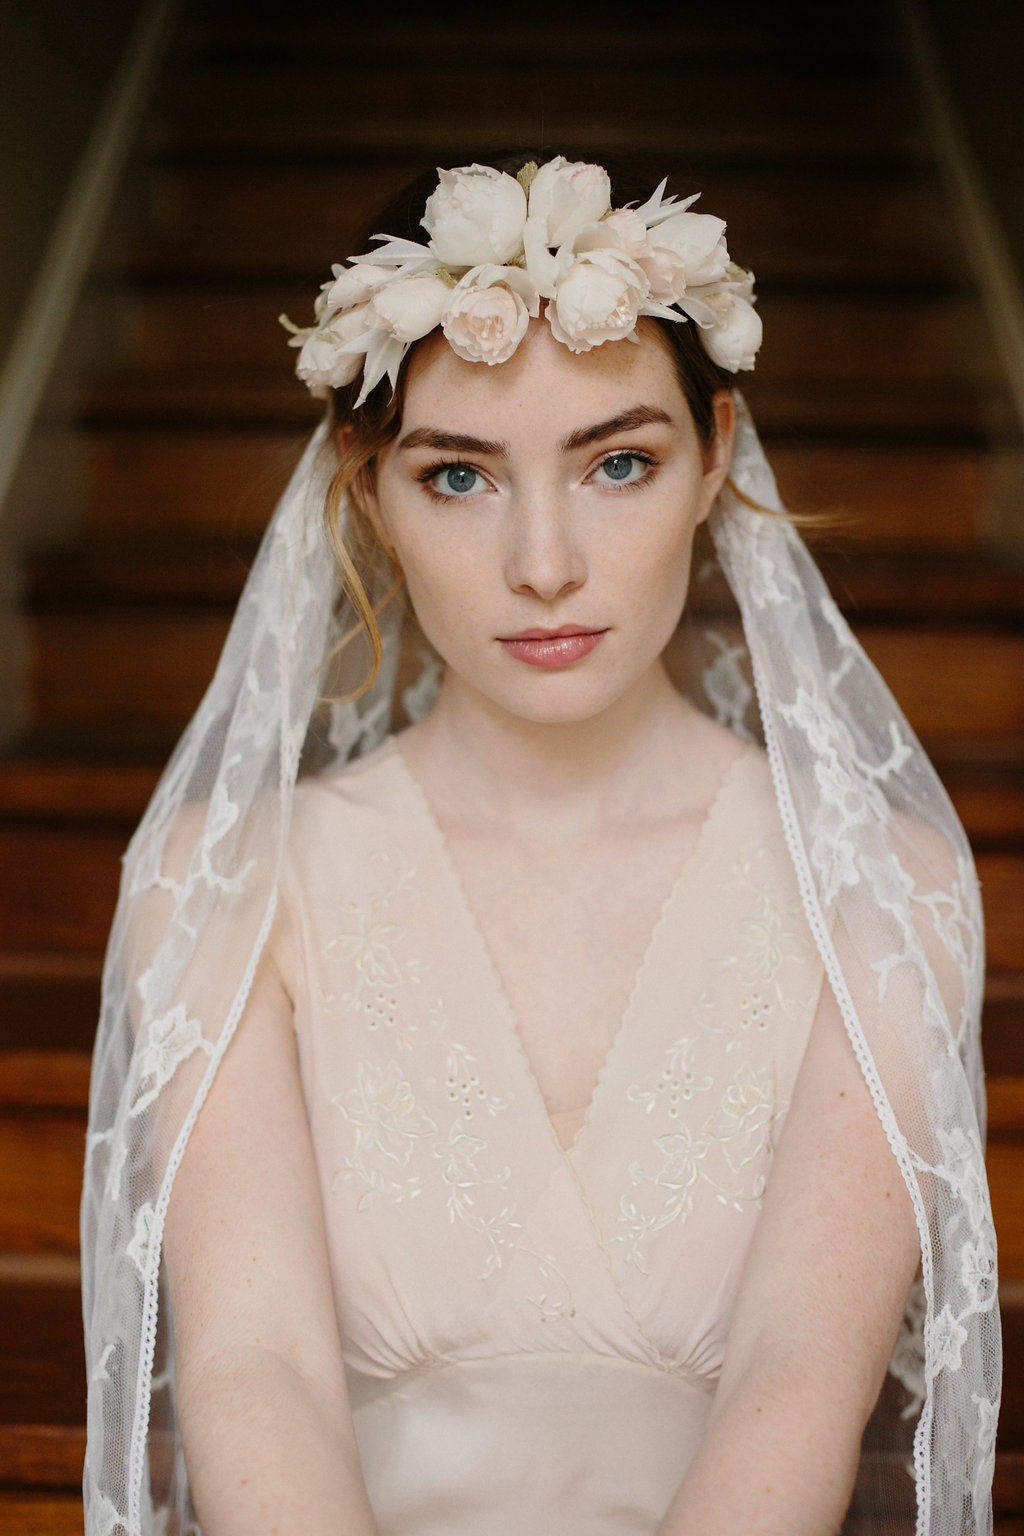 Bridal Silk Flower Crown Boho Chic Chantilly Lace Wedding Veil